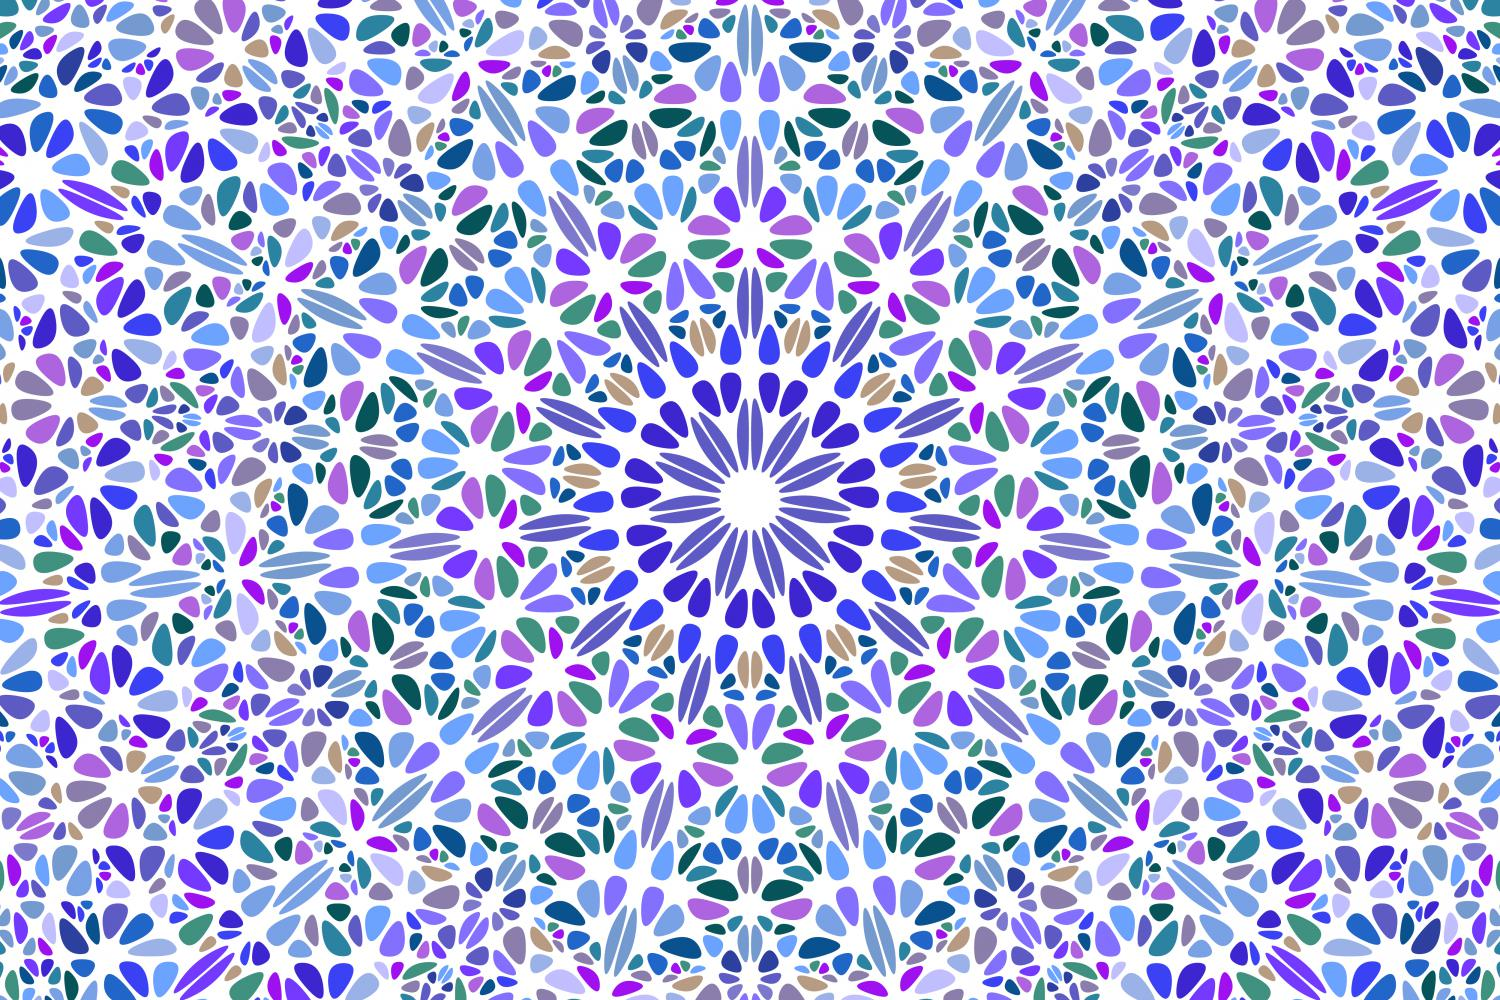 48 Floral Mandala Backgrounds example image 10